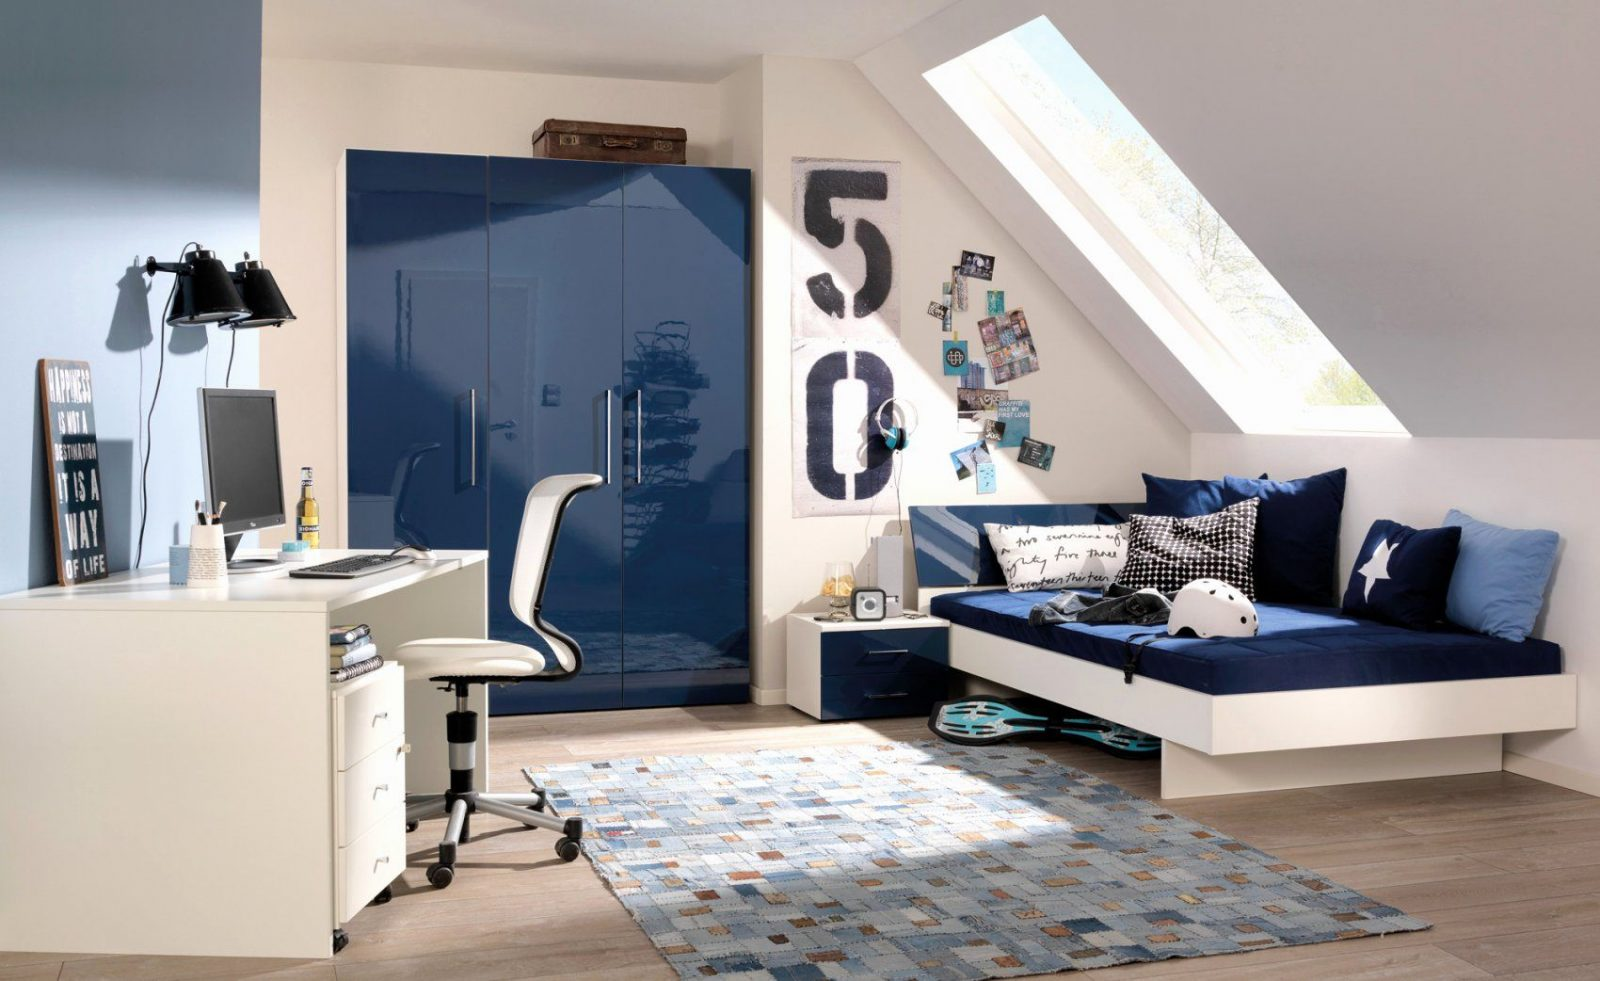 Jugendzimmer f r 2 jungs haus design ideen for Jugendzimmer fur 2 kinder